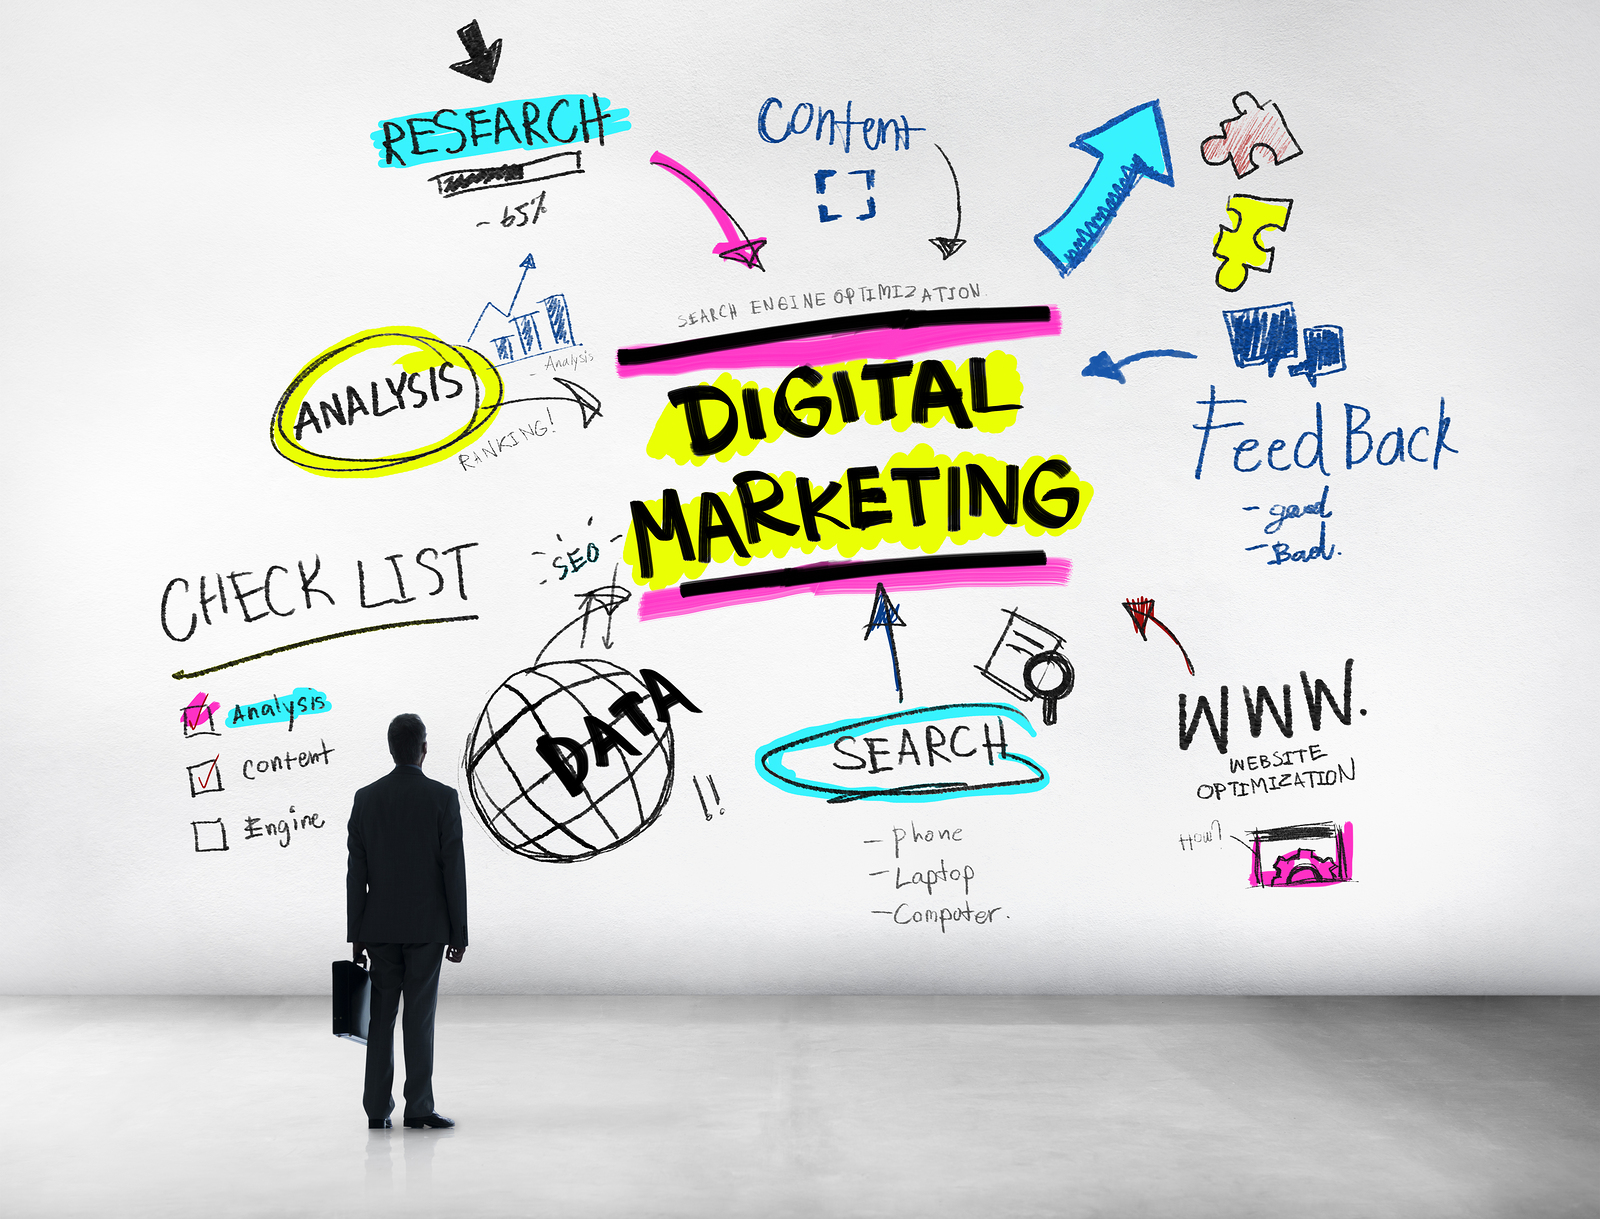 DIGITAL MARKETING: THE EVER BEST CAREER PATH